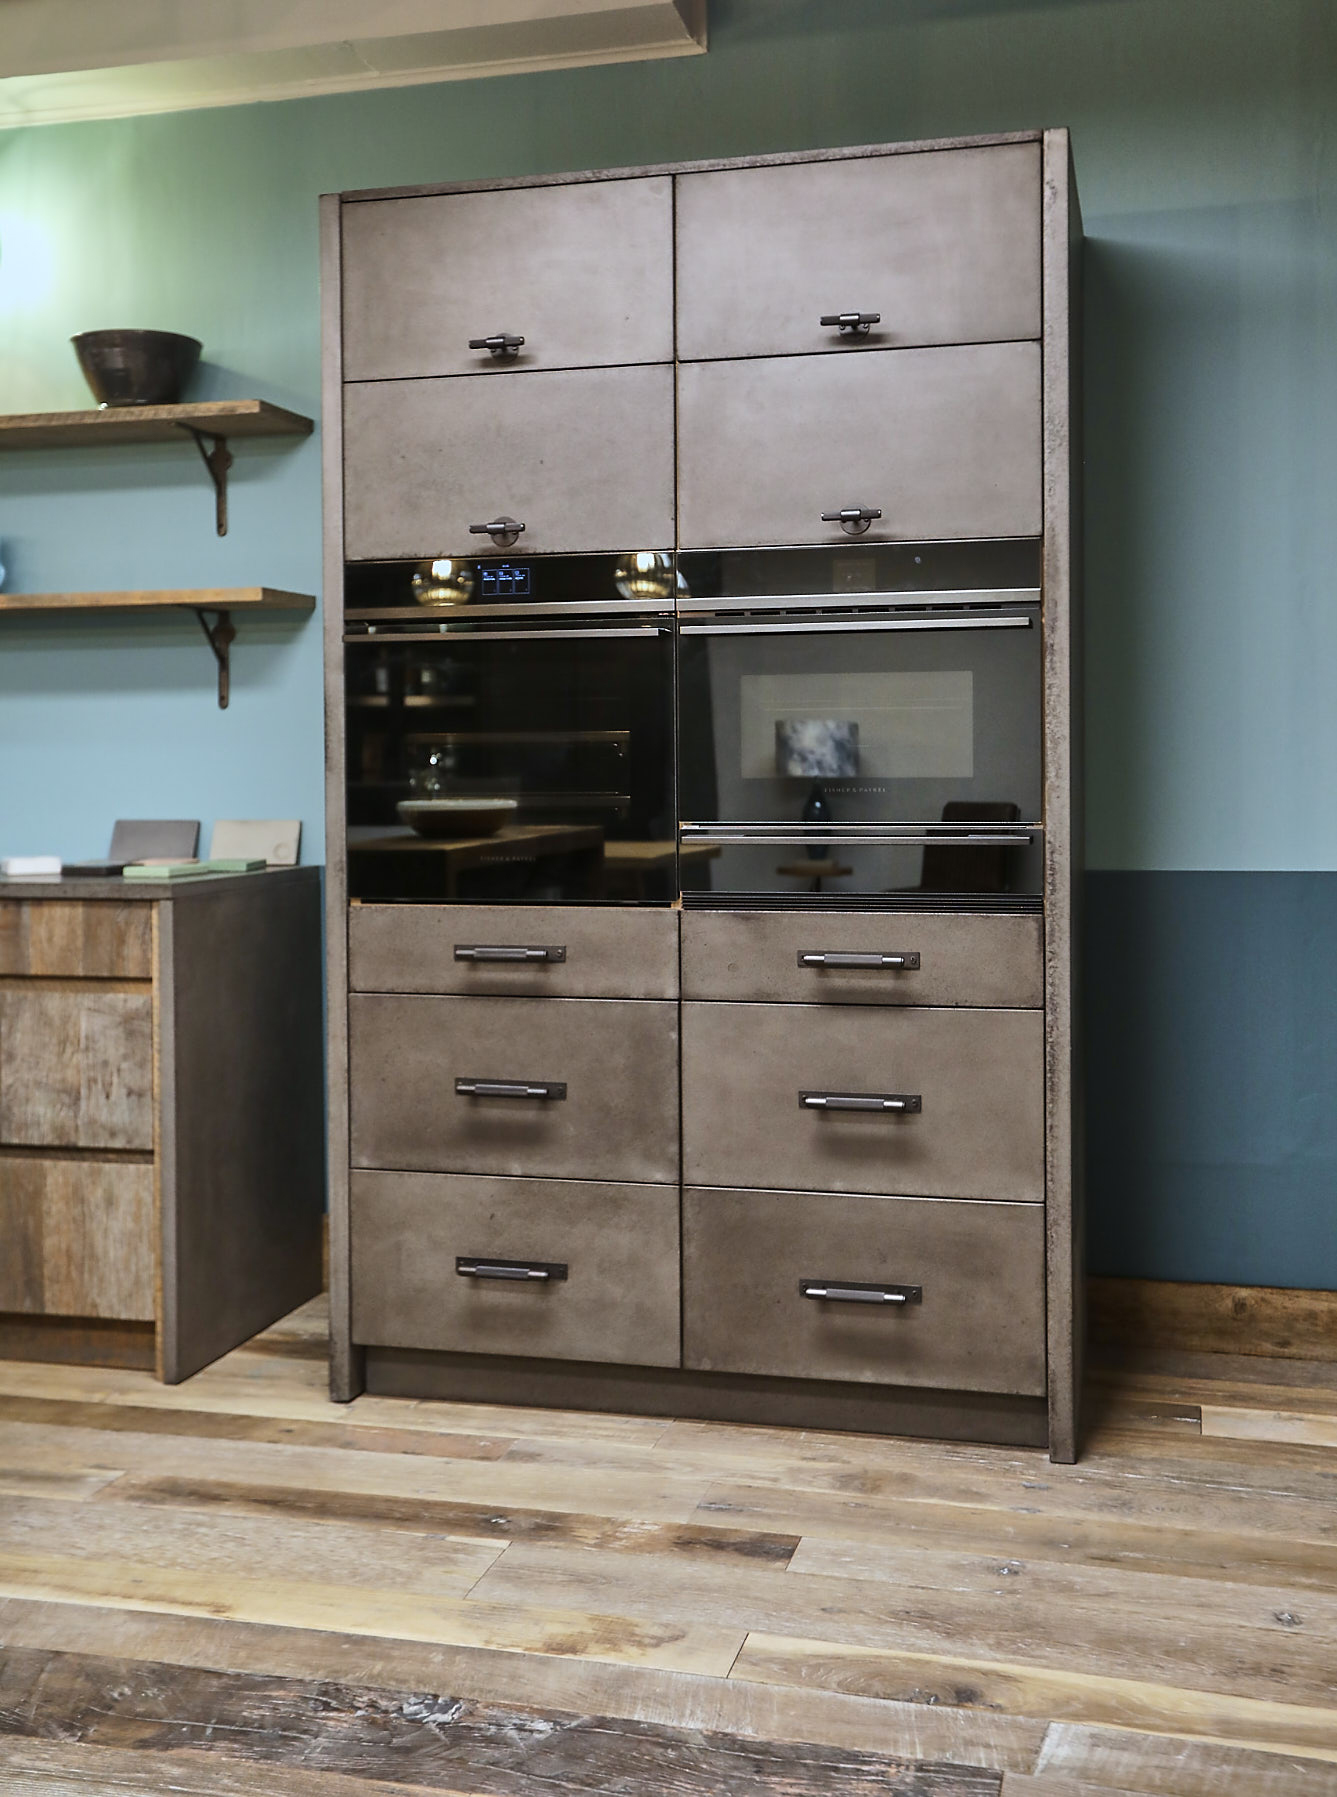 Concrete kitchen unit